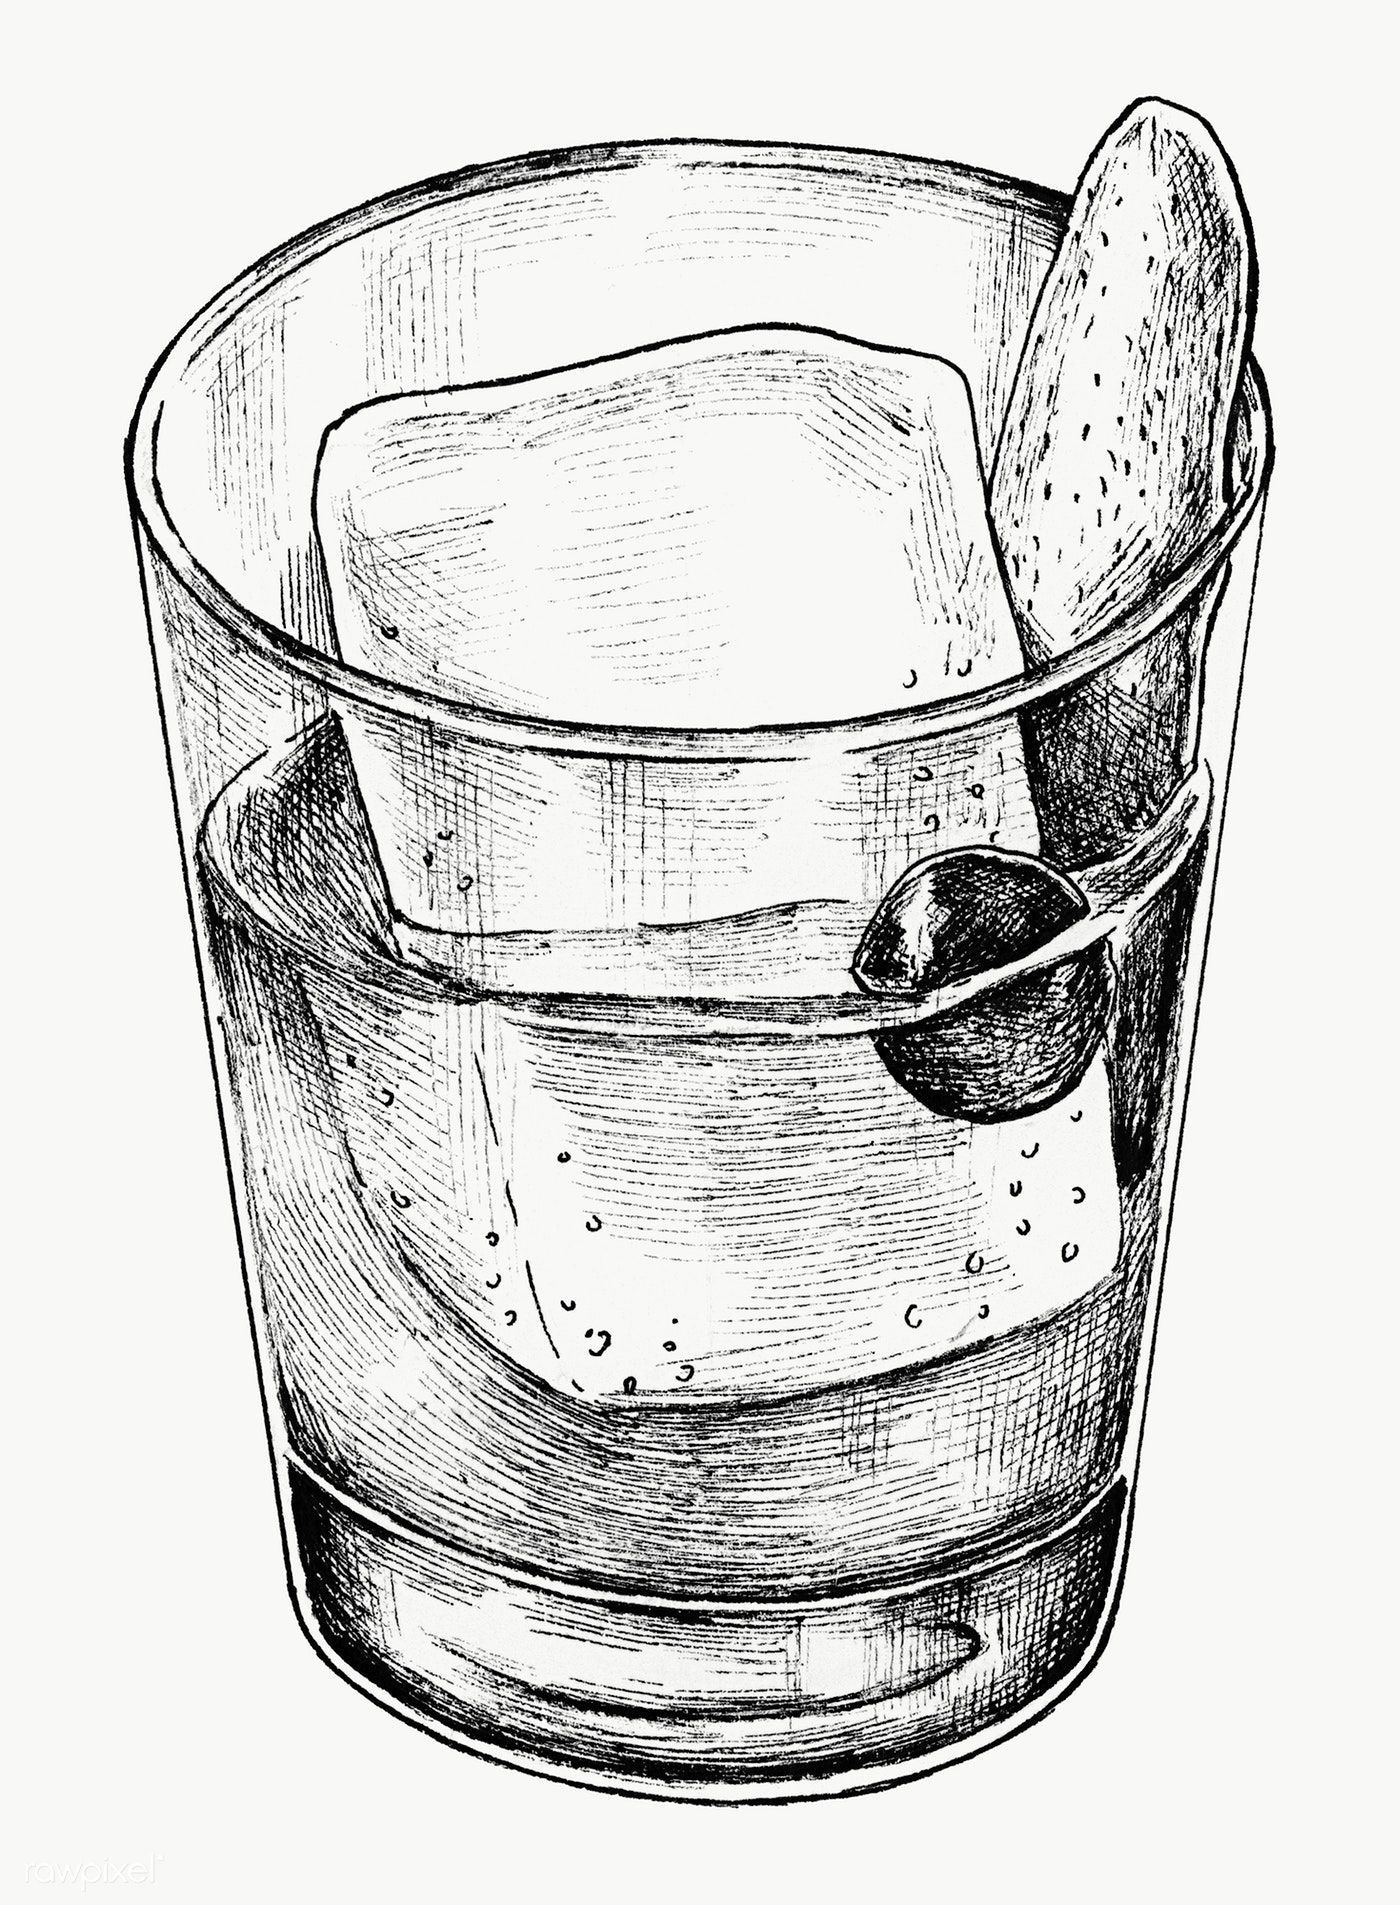 Hand Drawn Cocktail Drink In A Glass Transparent Png Free Image By Rawpixel Com How To Draw Hands Cocktail Illustration Cocktail Drinks